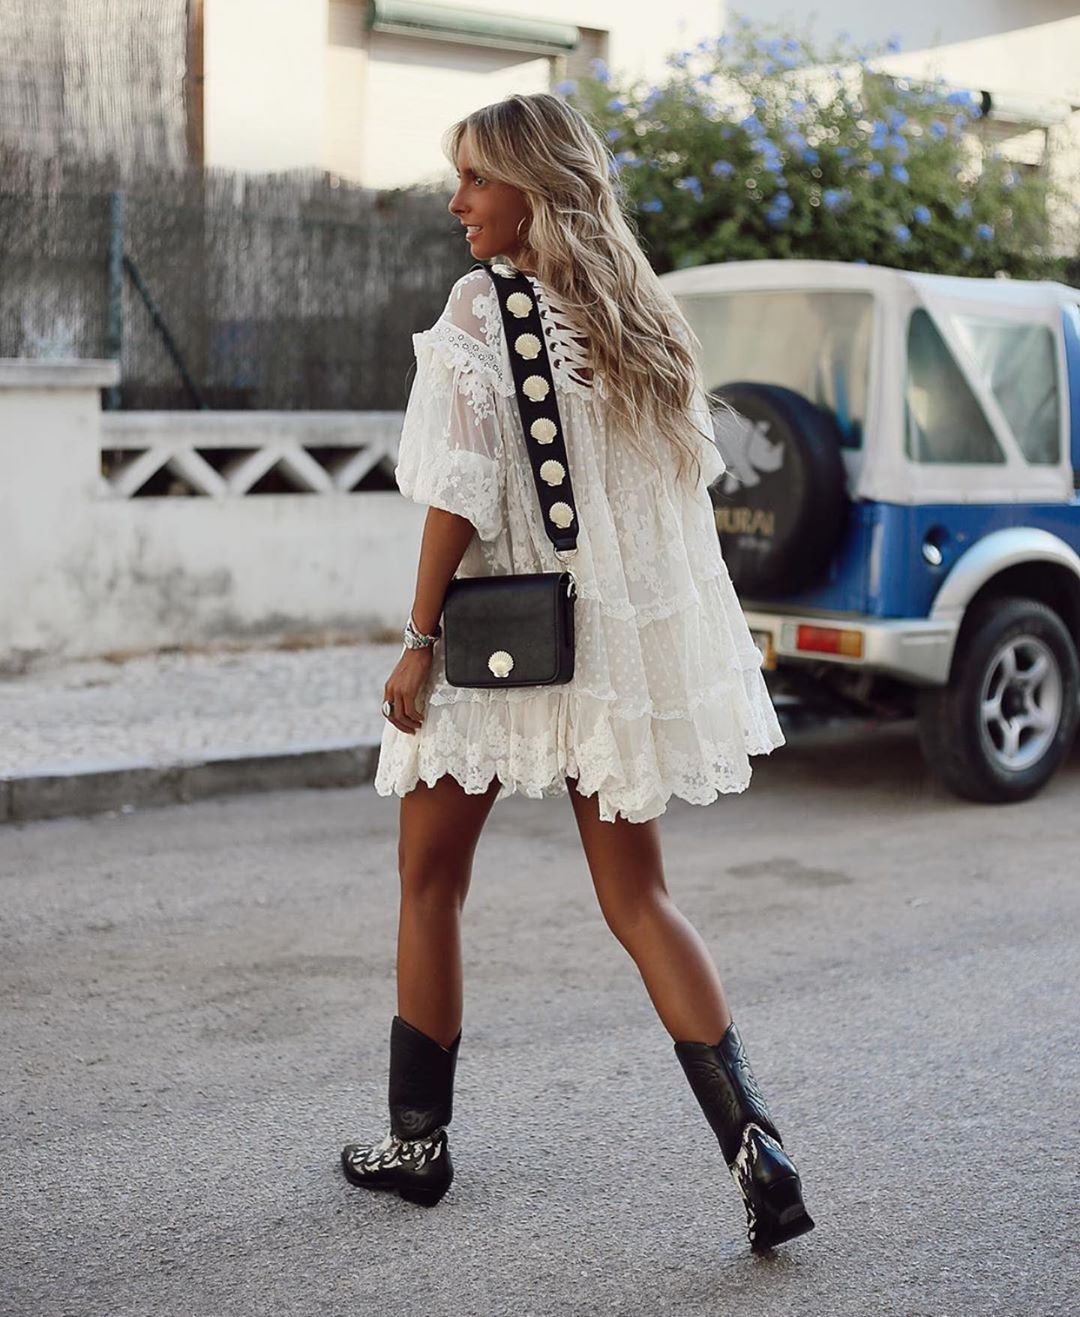 Pin By Celin Cecil On Stylish Western Boots Outfit Cowboy Boots Outfit Summer White Boots Outfit [ 1317 x 1080 Pixel ]